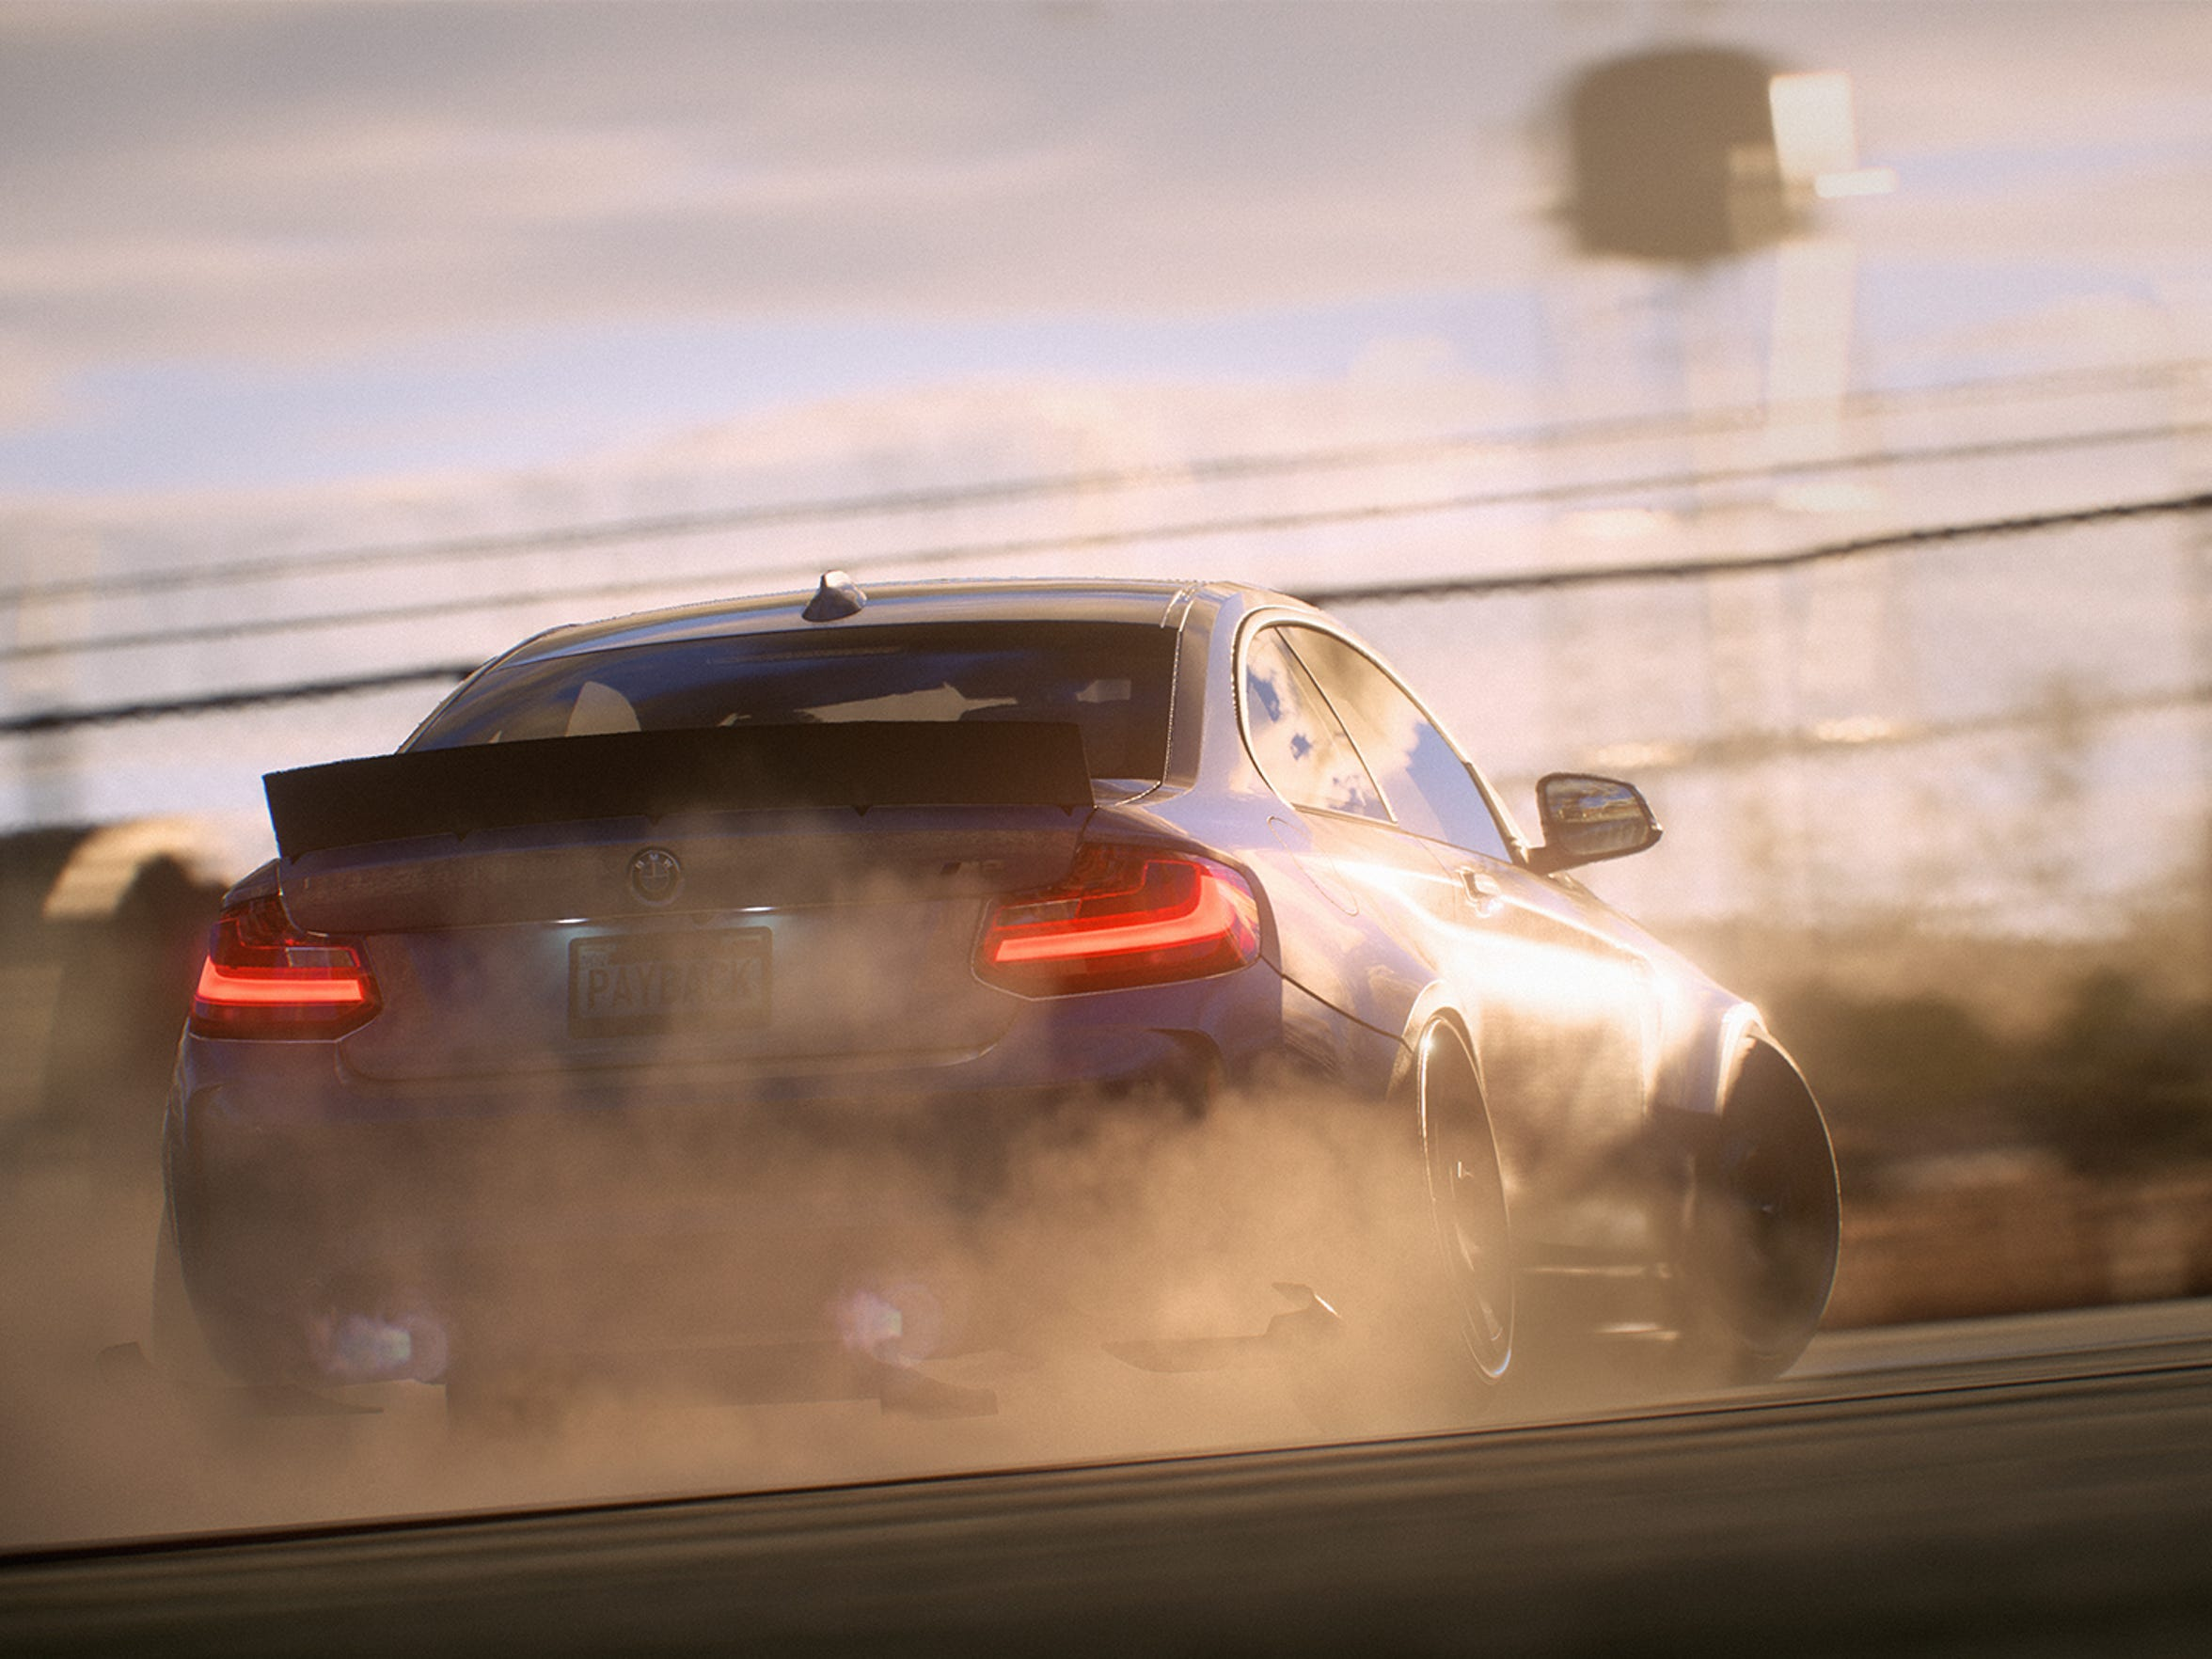 Need for Speed Payback for PC, PS4 and Xbox One.